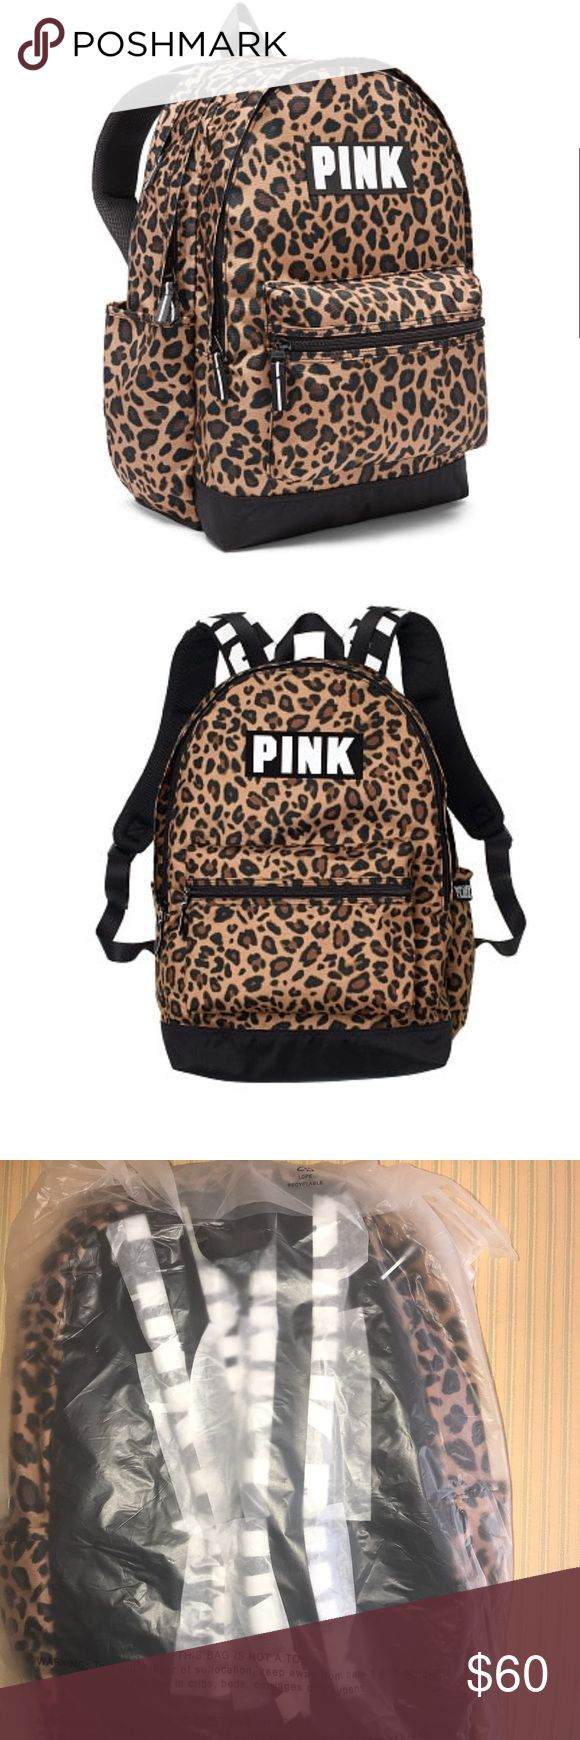 Just Added Pink VS Back Pack Bundle and Save ::: The one and only Campus Backpack! Durable and super cute, it's got plenty of pockets and tons of room to fit all your campus essentials. Comfy padded straps with mesh overlay for breathability  Zippered padded laptop sleeve fits 17'' laptop Exterior zip pocket Internal mesh pocket 18in x12in Velcro closure side pockets PINK Victoria's Secret Bags Backpacks